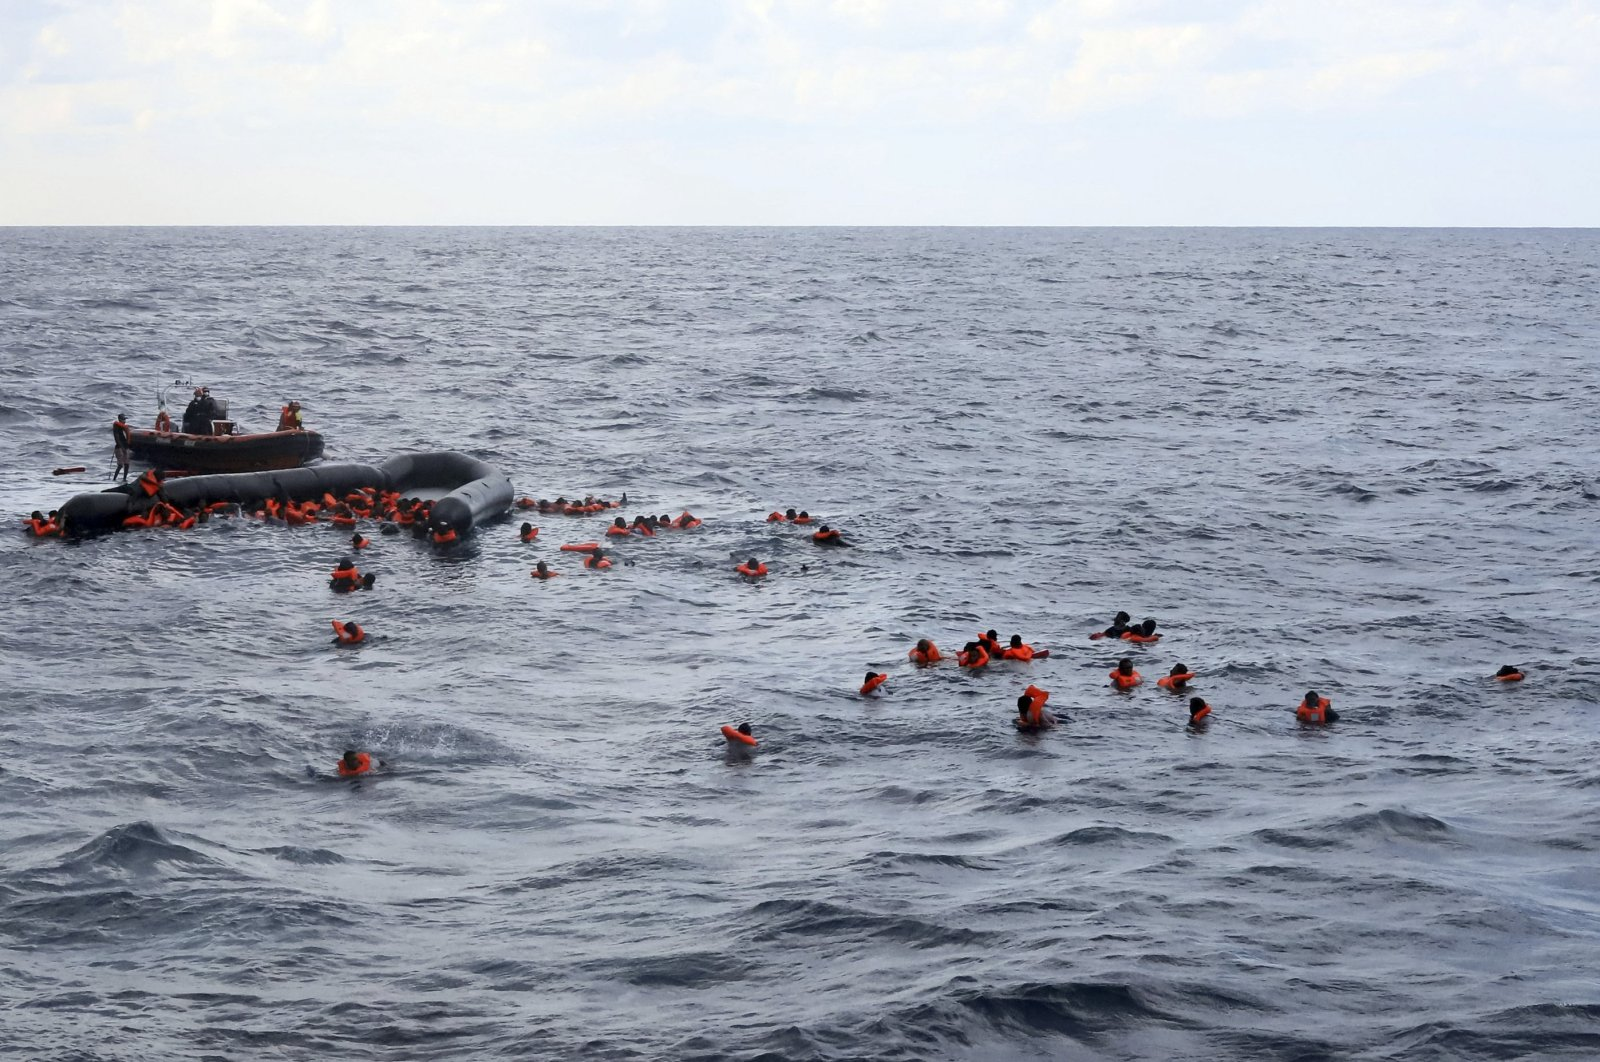 Refugees and migrants are rescued by members of the Spanish NGO Proactiva Open Arms, after leaving Libya trying to reach European soil aboard an overcrowded rubber boat in the Mediterranean sea, Nov. 11, 2020. (AP Photo)